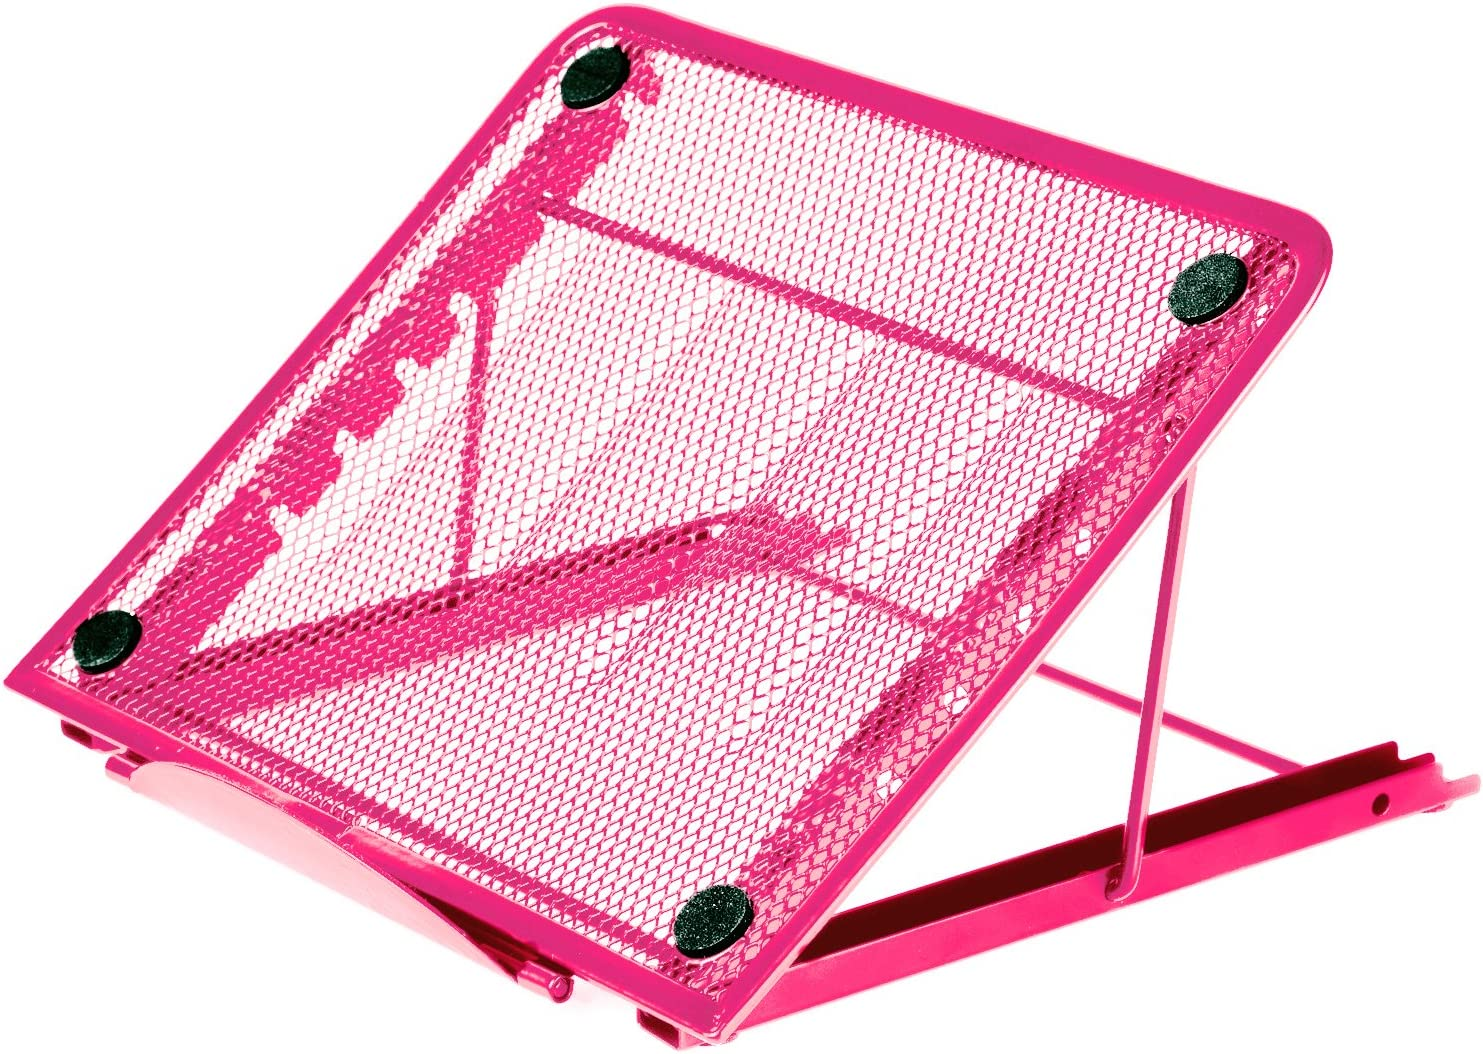 Halter Mesh Laptop Stand Inventory cleanup selling sale for Tablet Notebook iPad Low price A